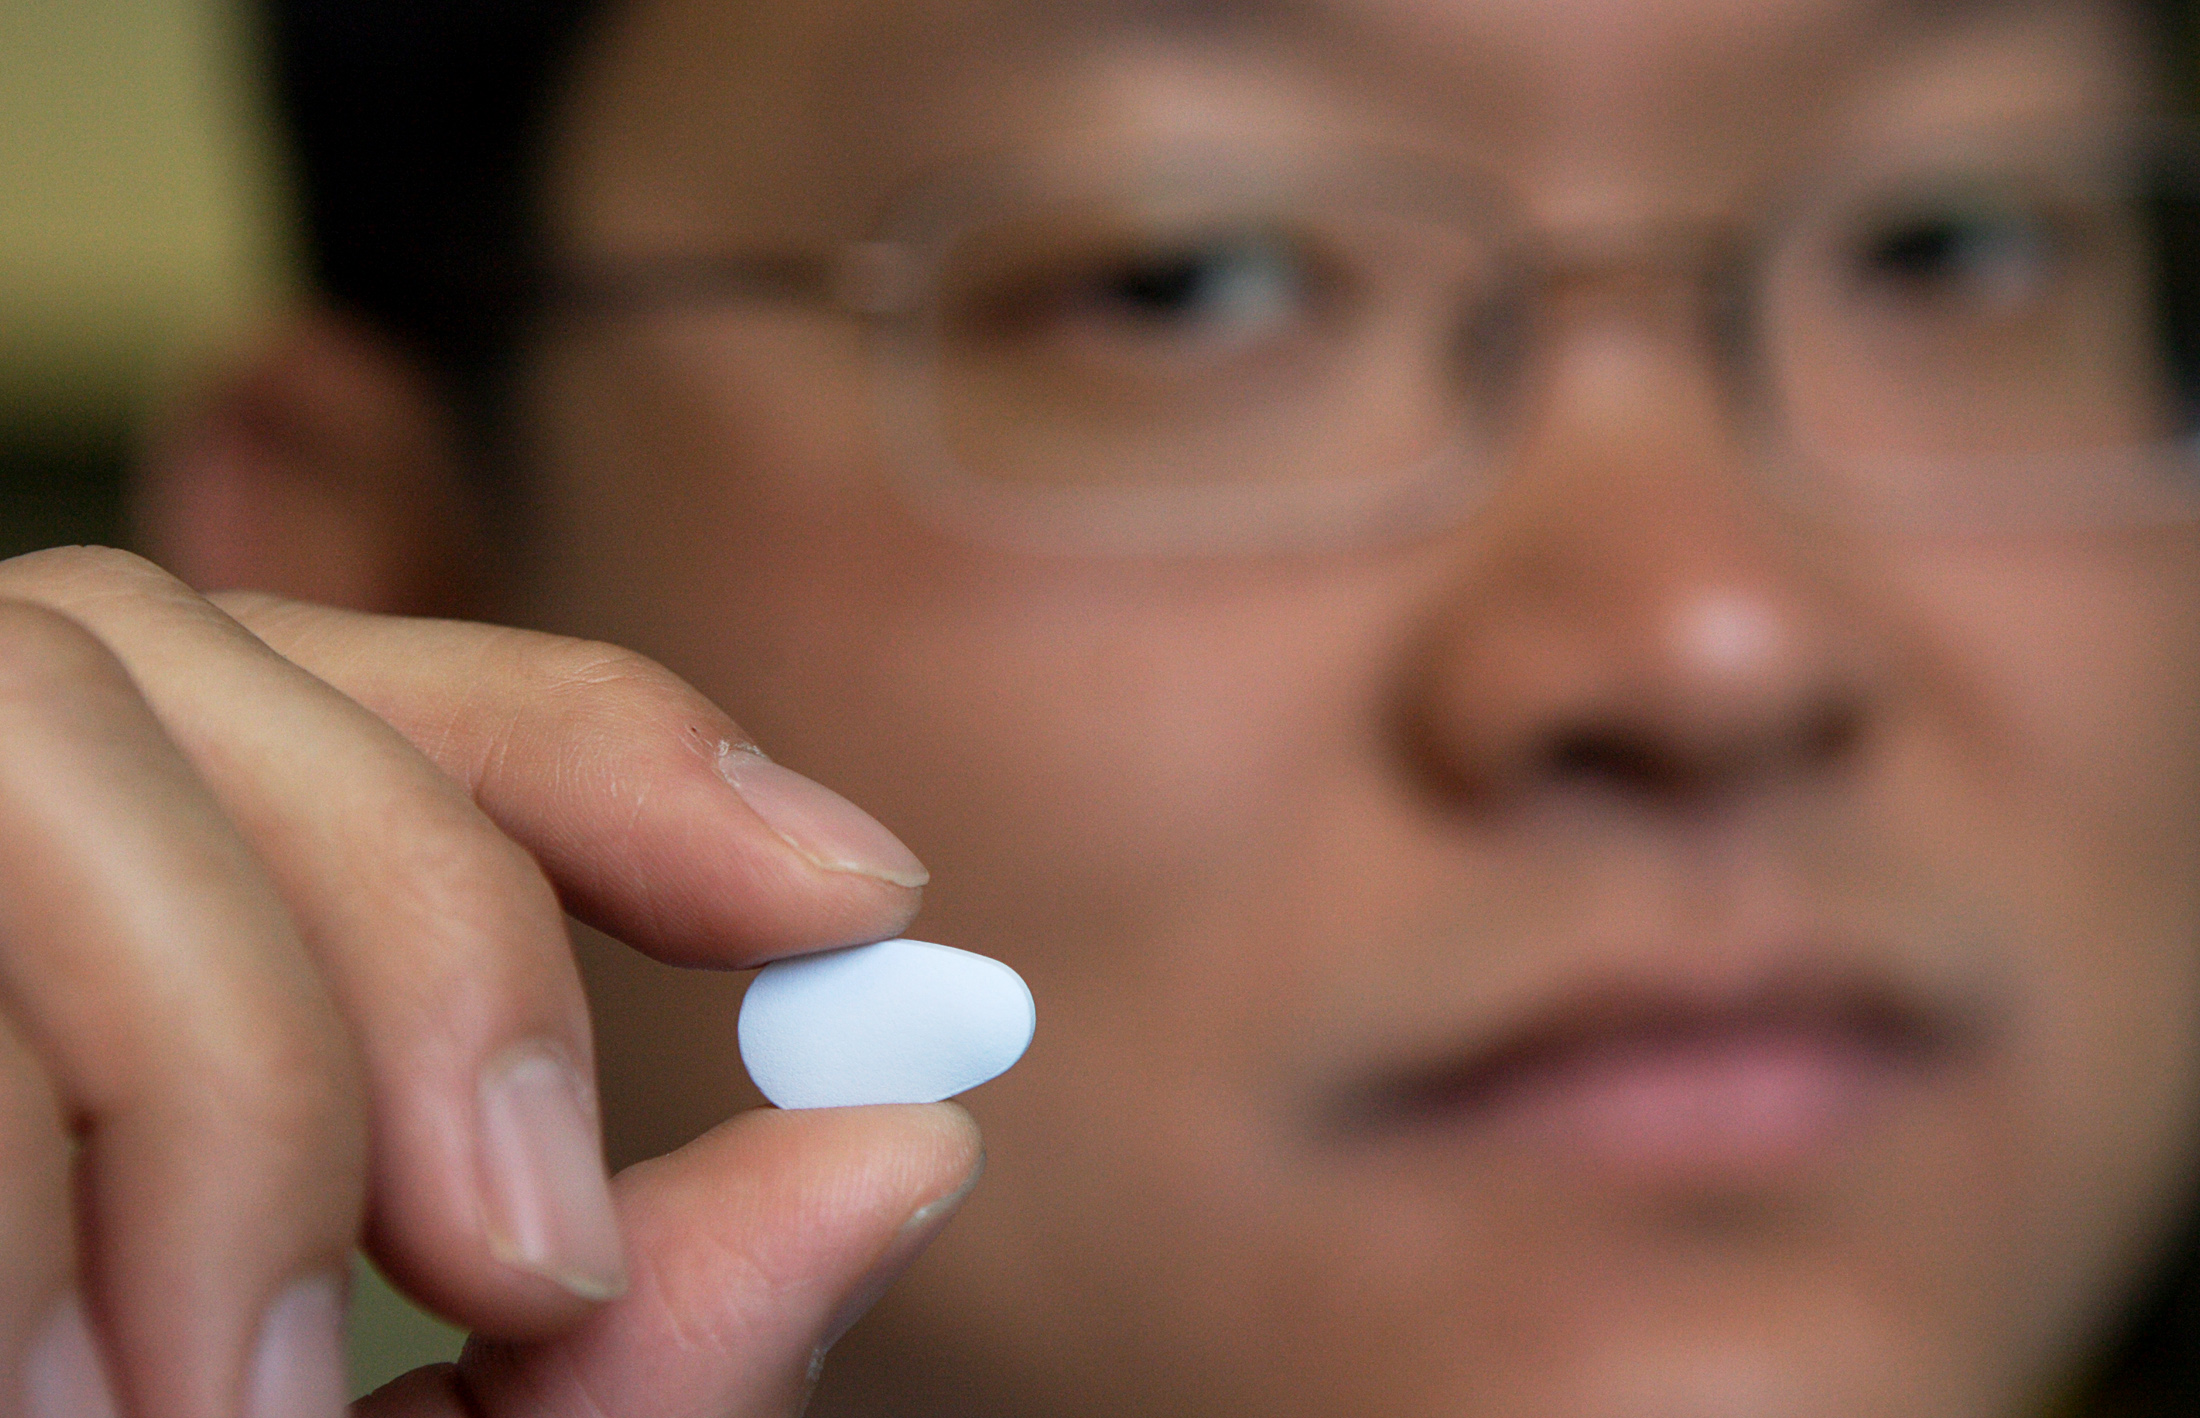 Dr. Albert Liu, director of HIV Prevention Intervention Studies at San Francisco's Department of Public Health, holds a Truvada pill in San Francisco, California, August 8, 2006. The drug is the basis of a controversial HIV-prevention technique called PrEP. Photo by Kimberly White/Reuters